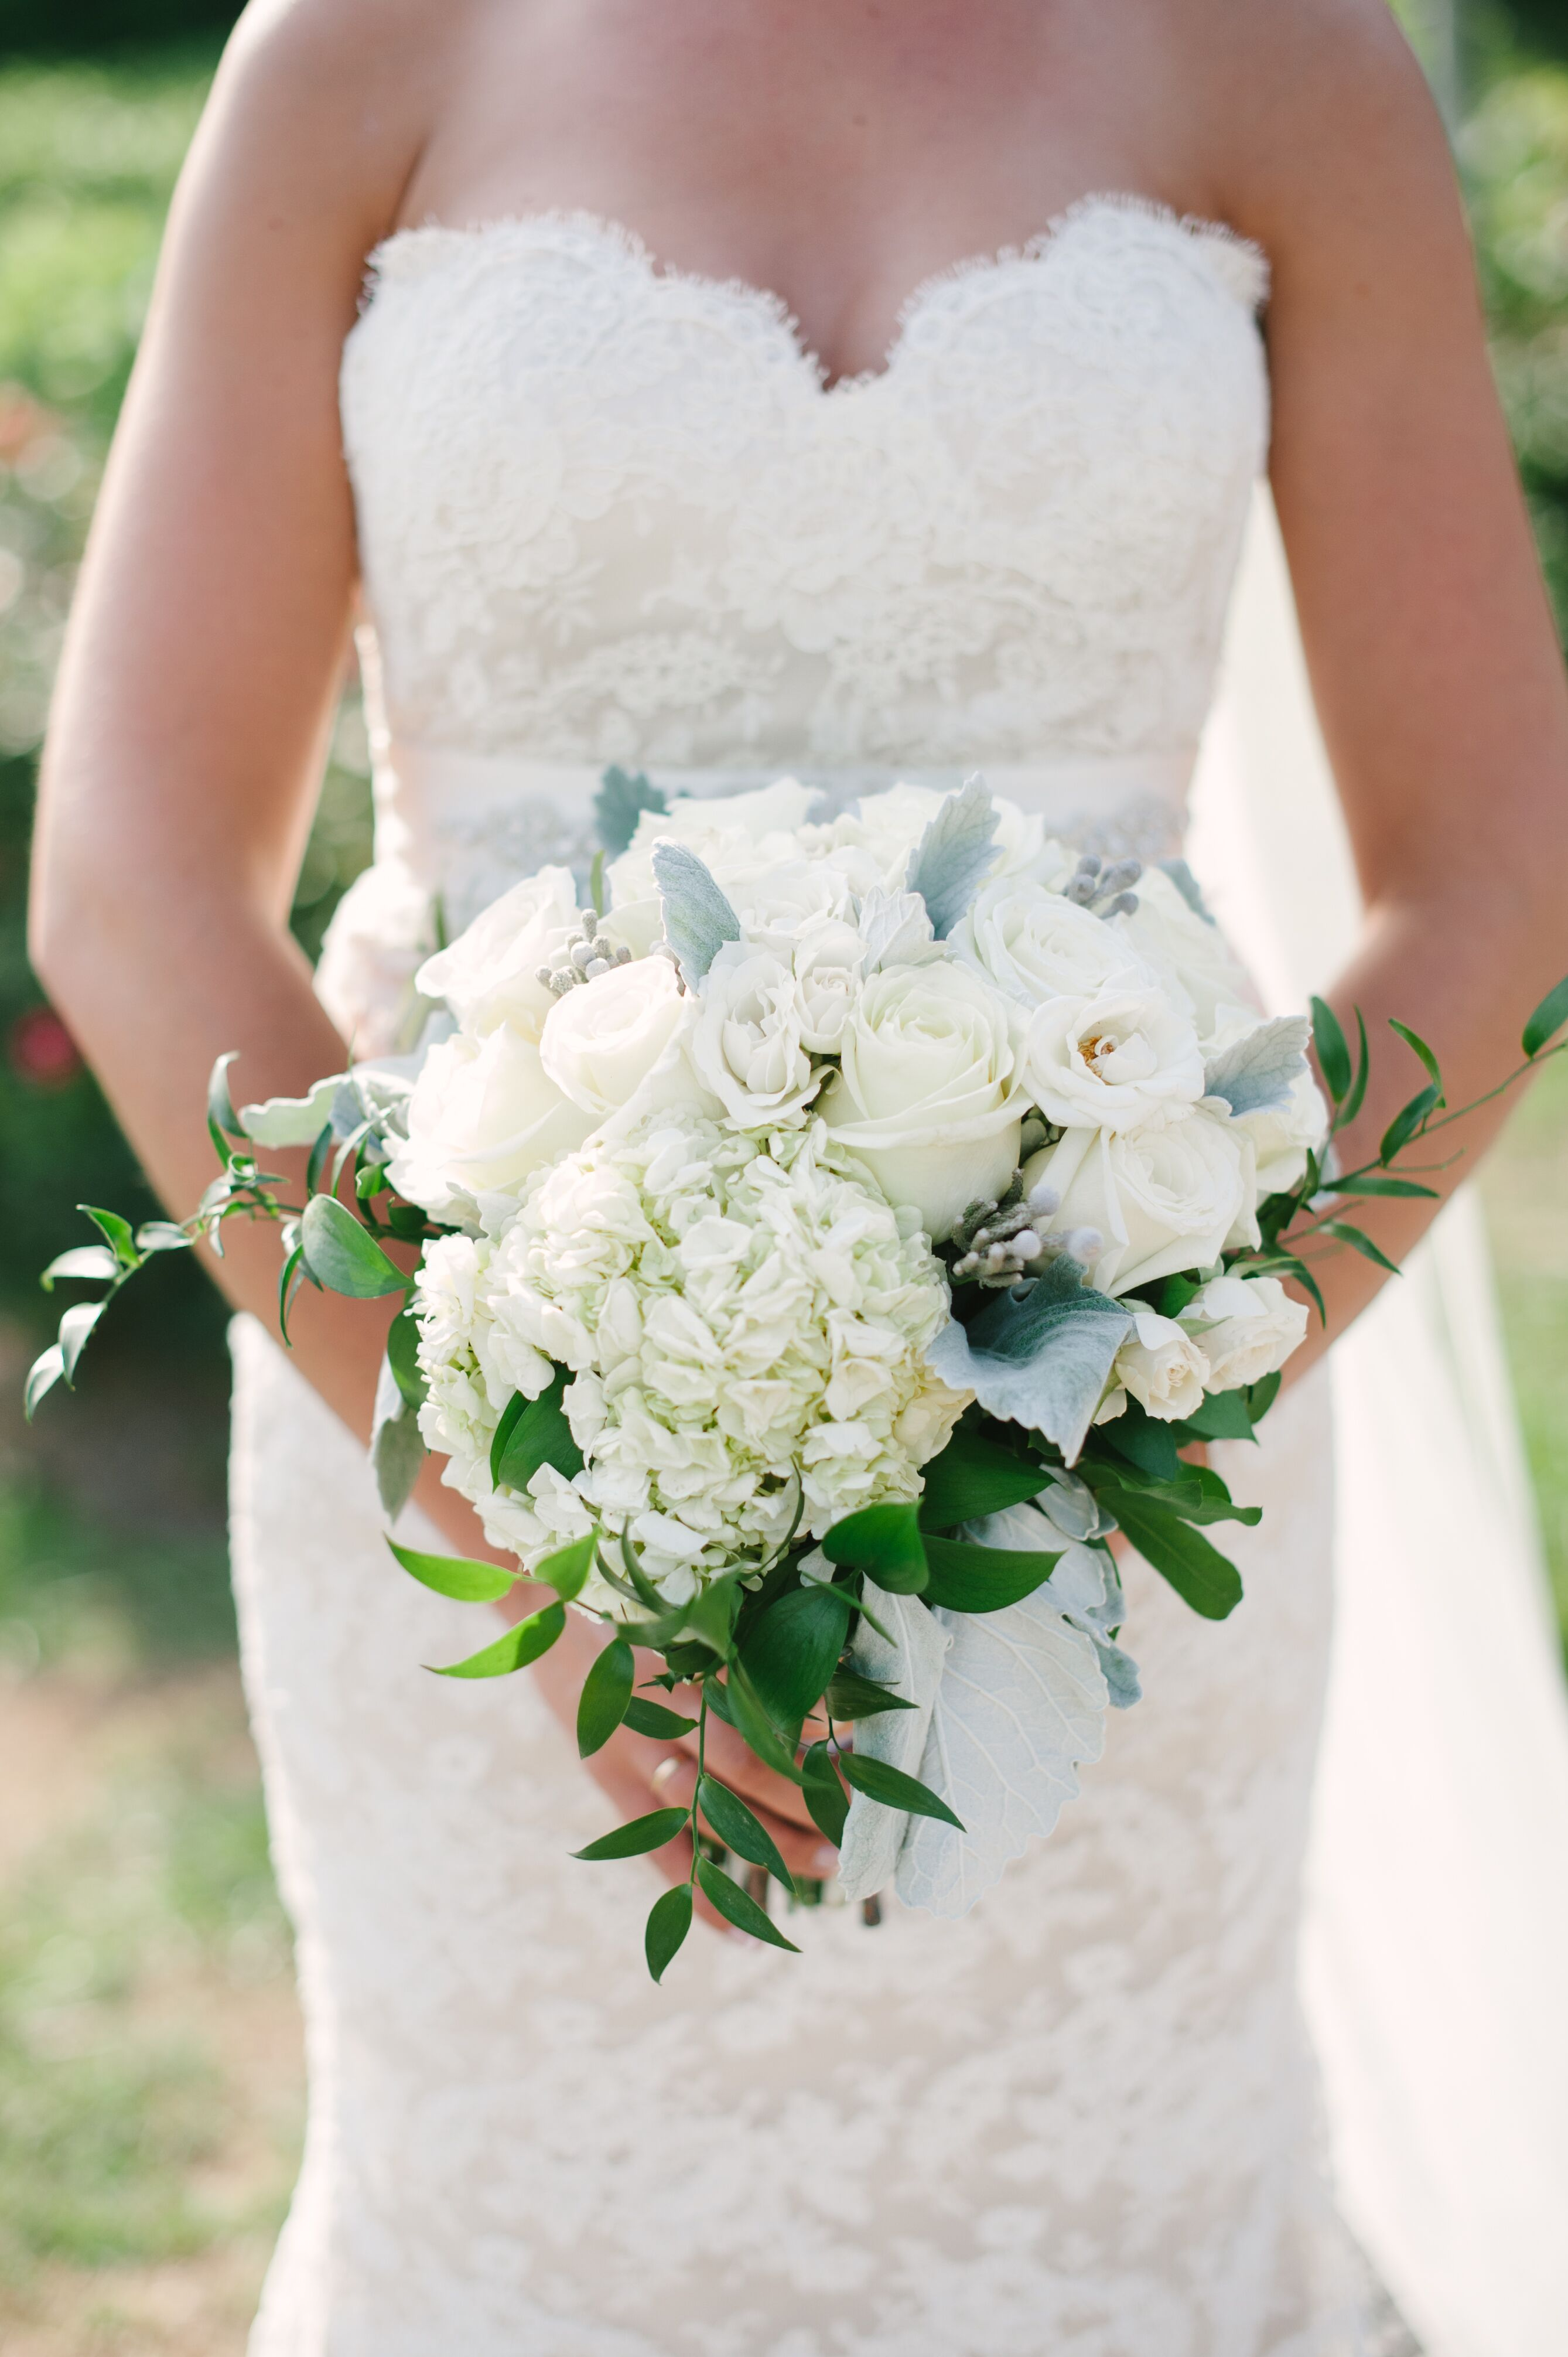 Bridal Bouquet With Roses Hydrangeas And Lisianthus